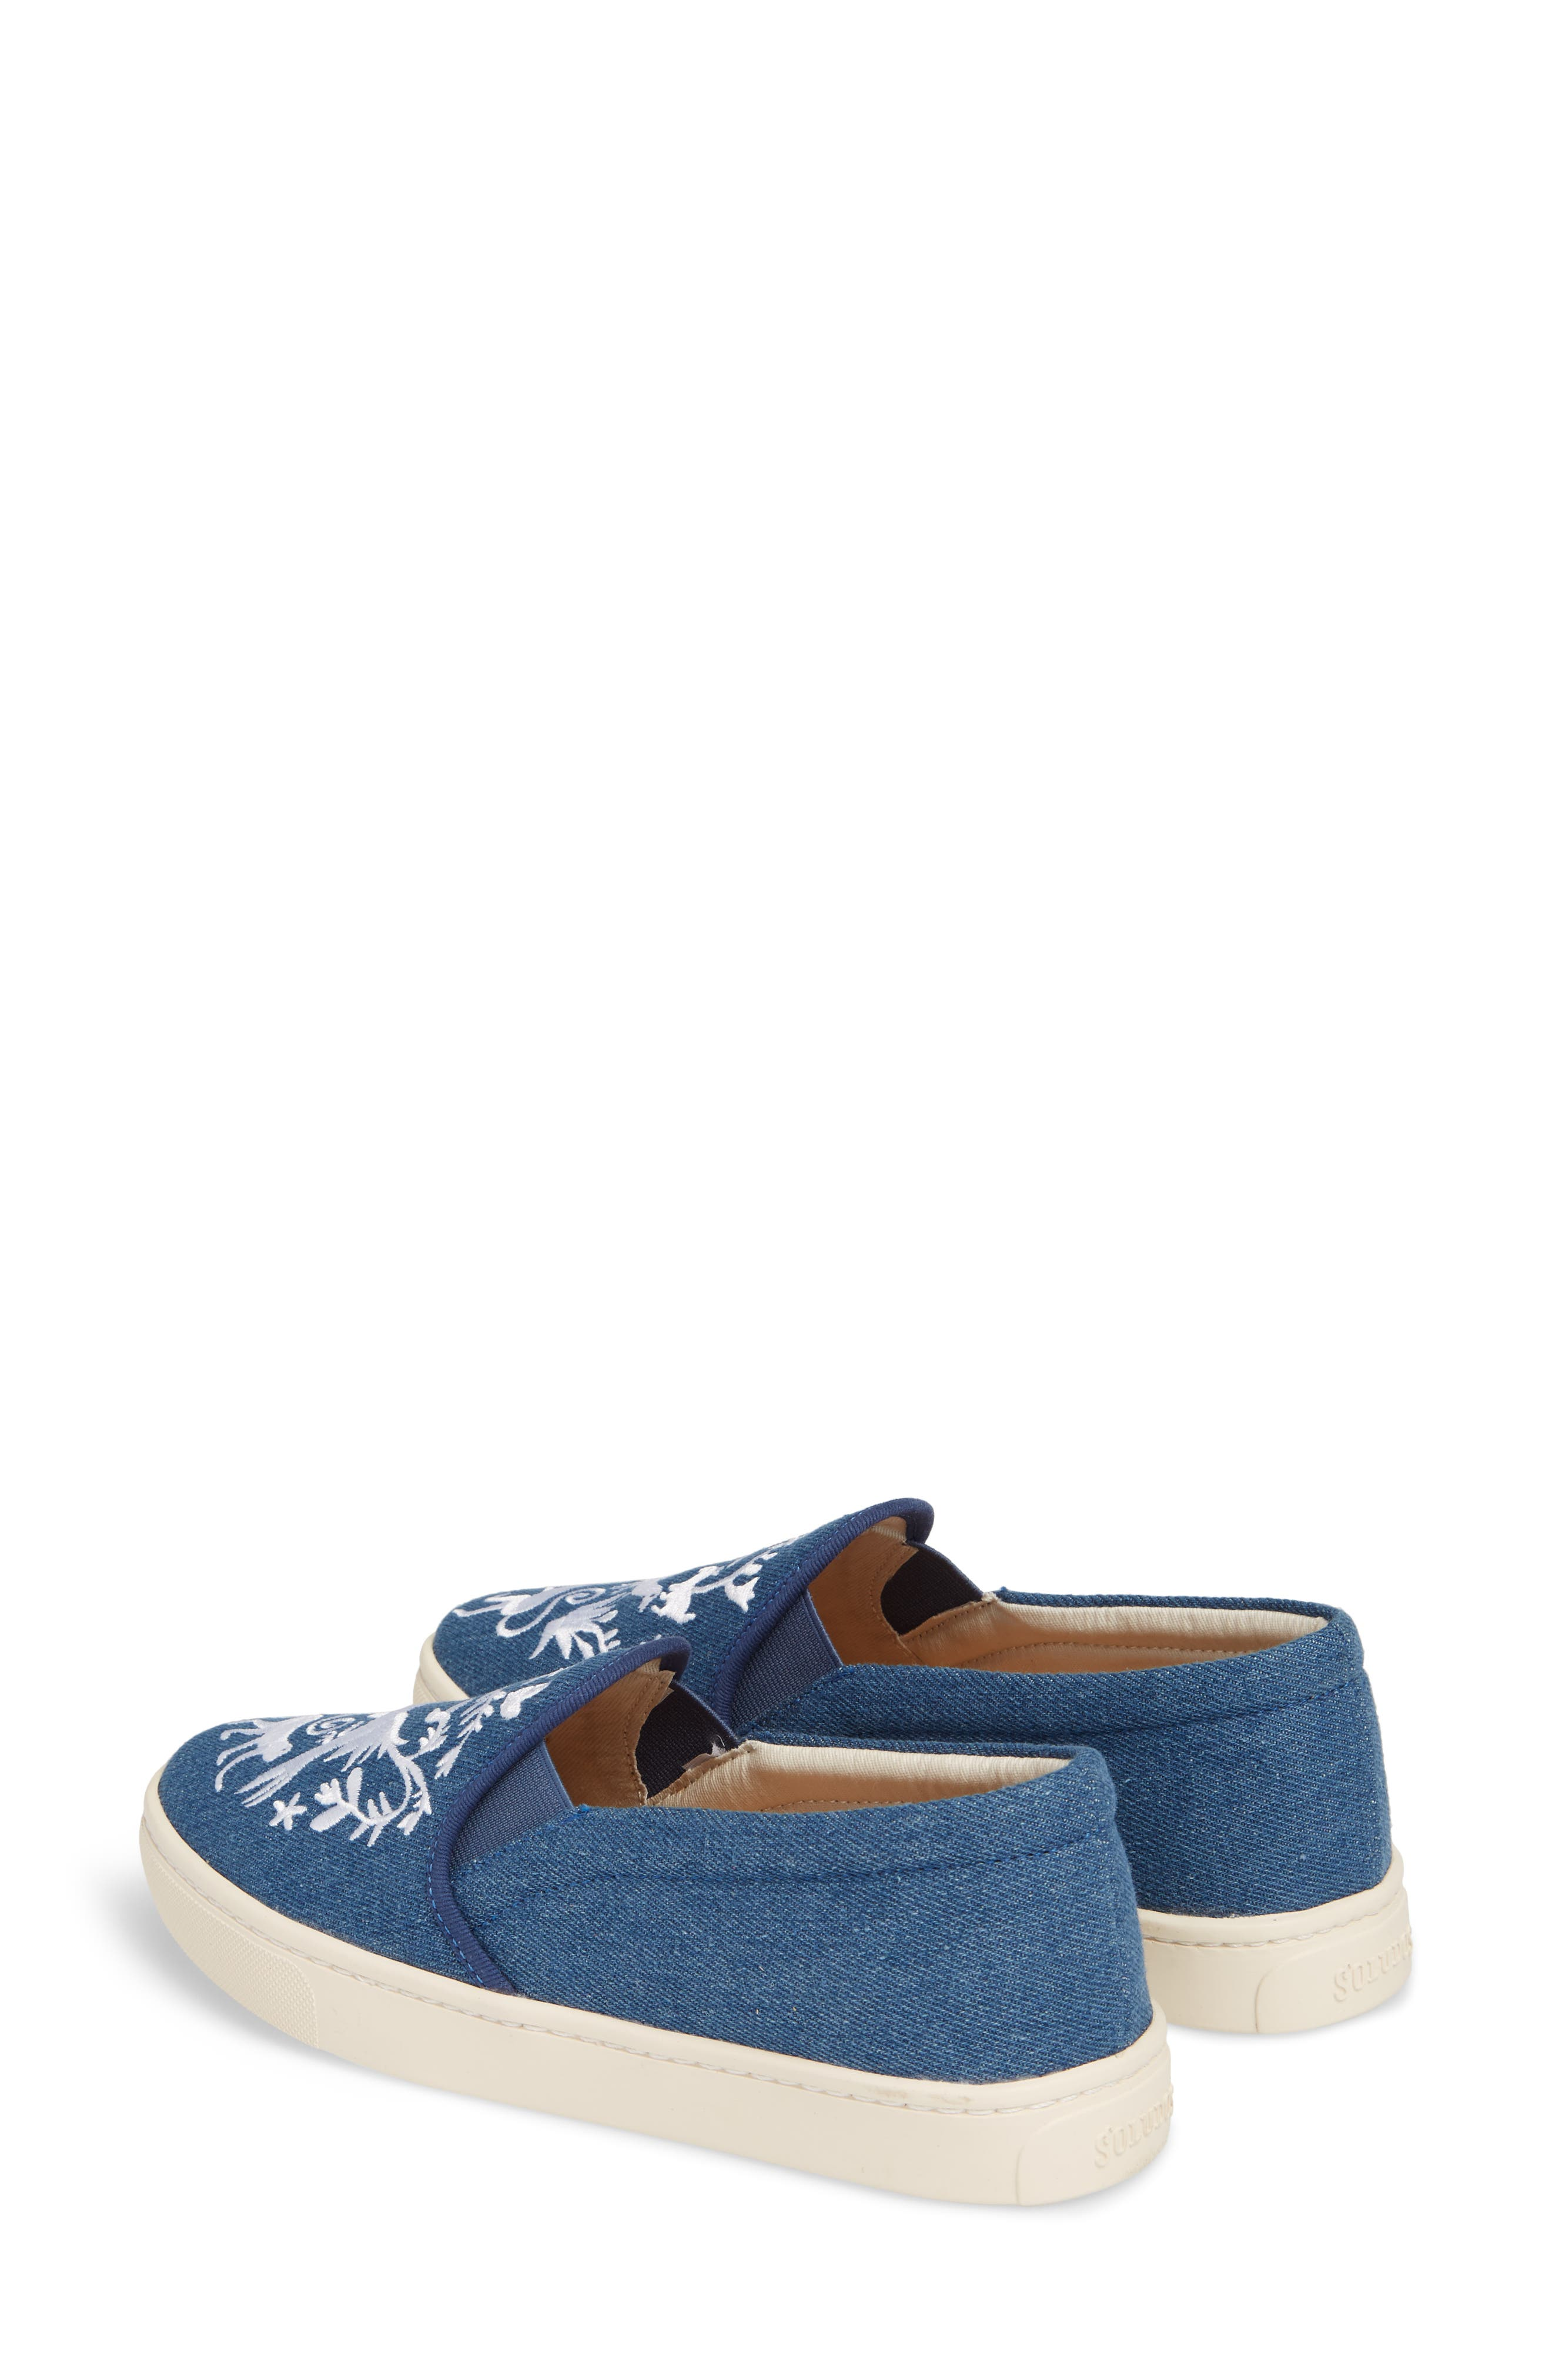 Otomi Slip-On Sneaker,                             Alternate thumbnail 2, color,                             426